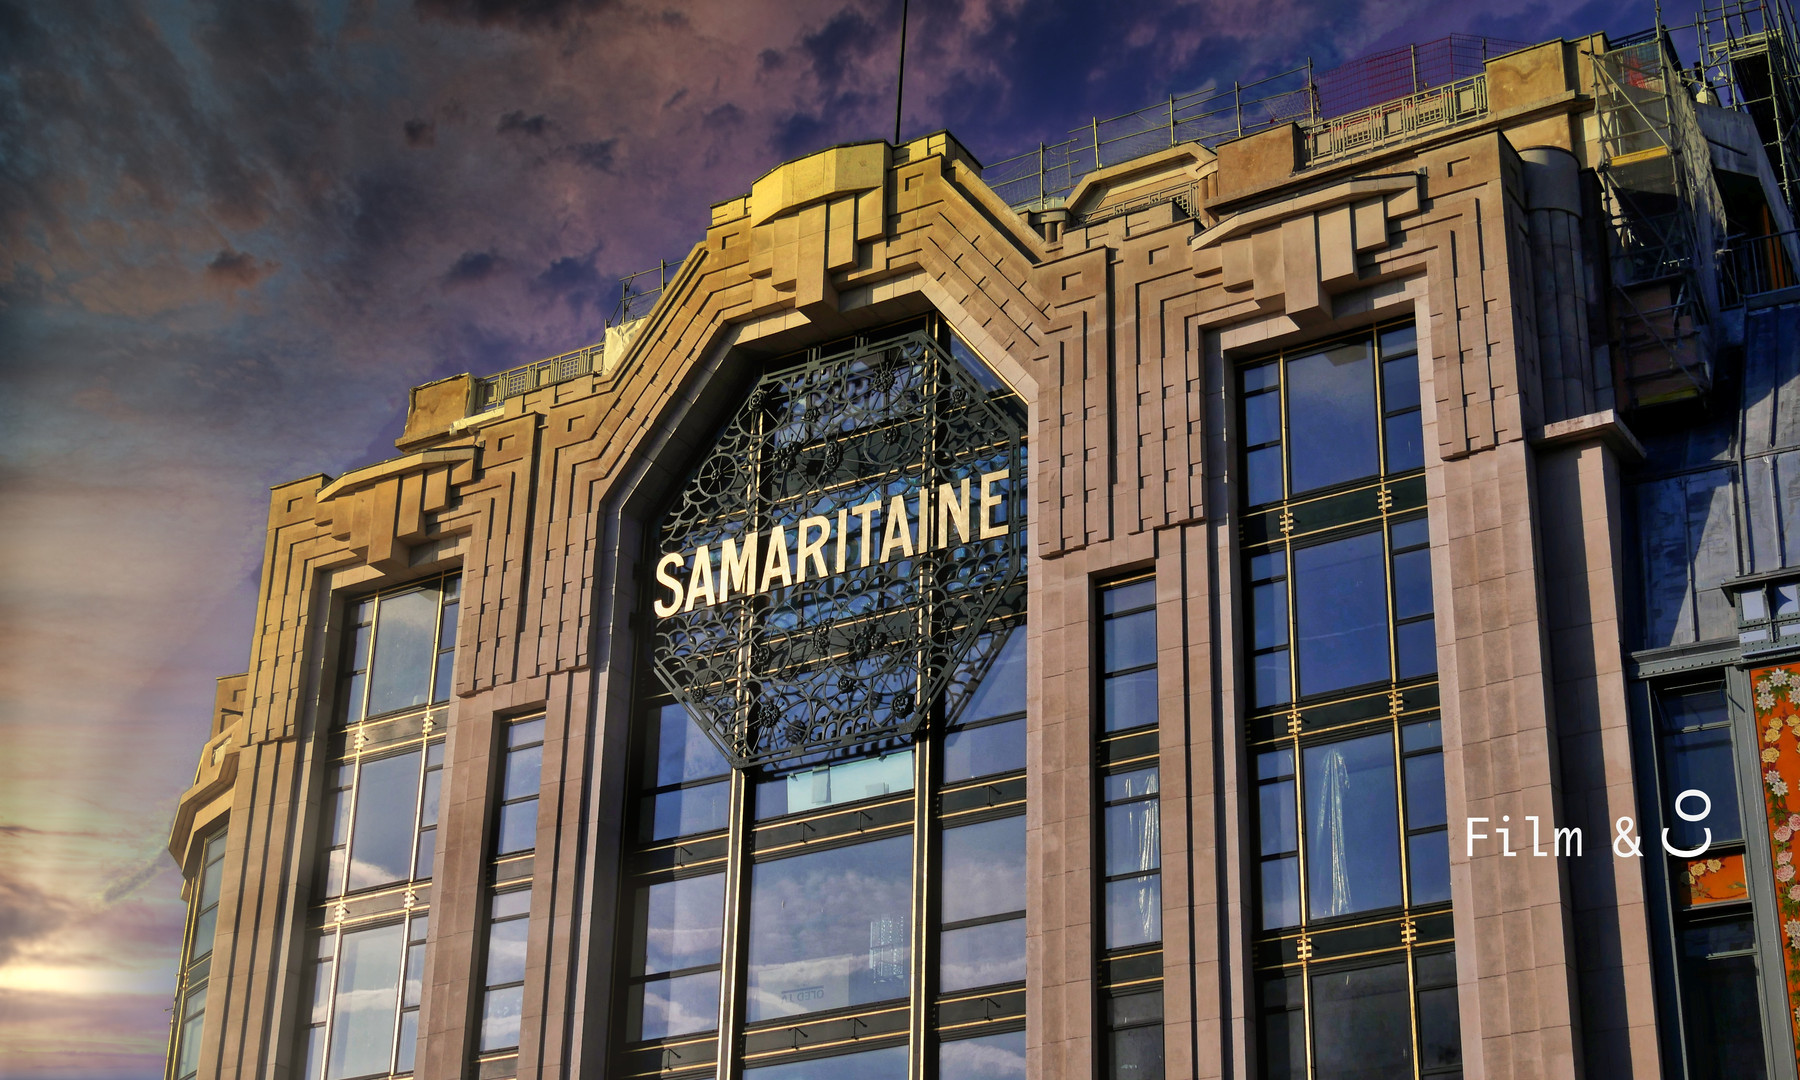 Samaritaine Sunset